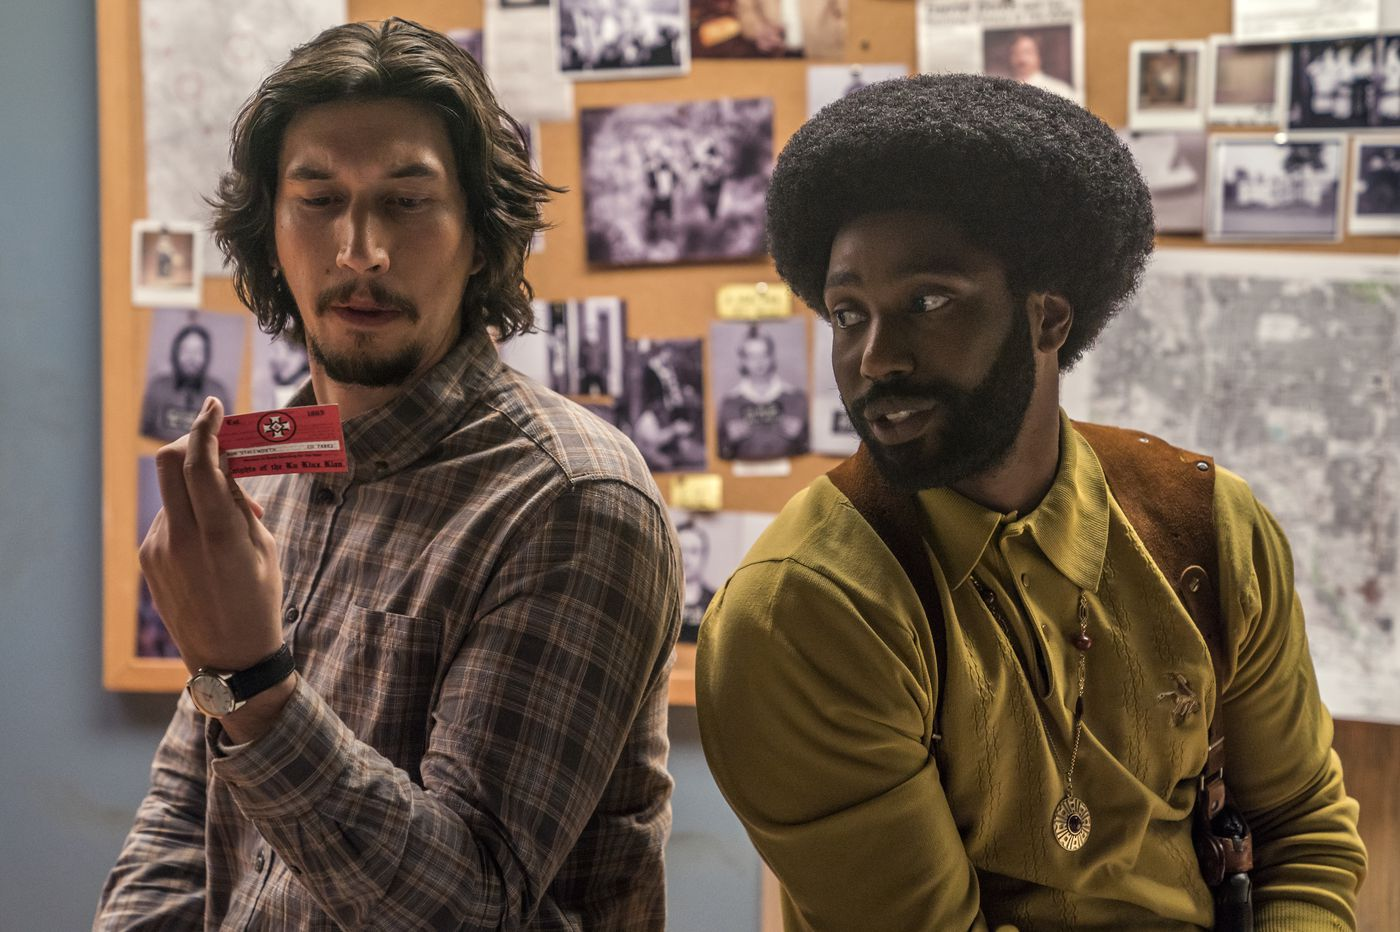 'BlacKkKlansman': Spike Lee brings an amazing true story to the big screen